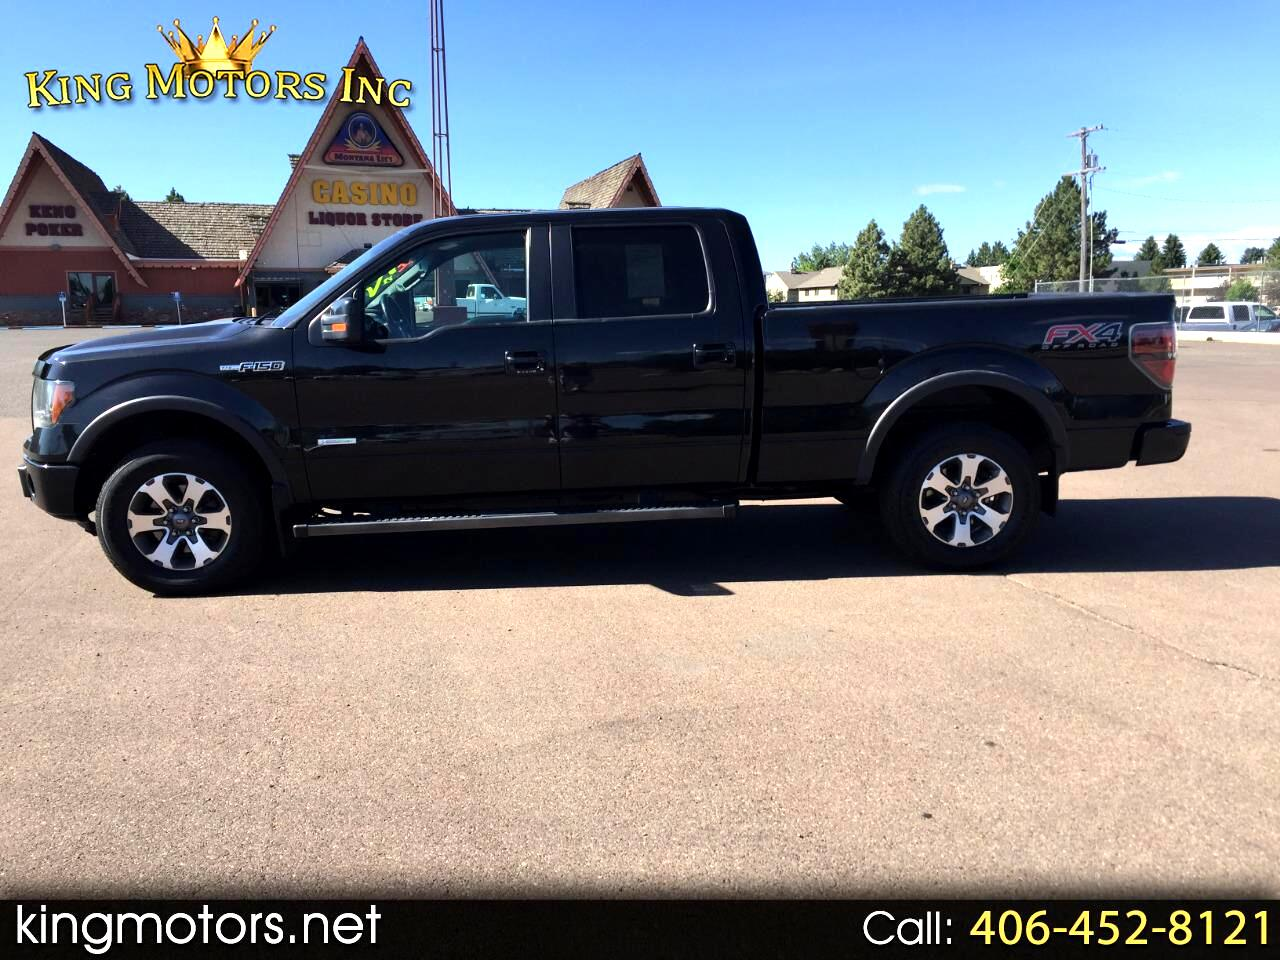 2014 Ford F-150 4WD SUPERCREW 6.5' FX4